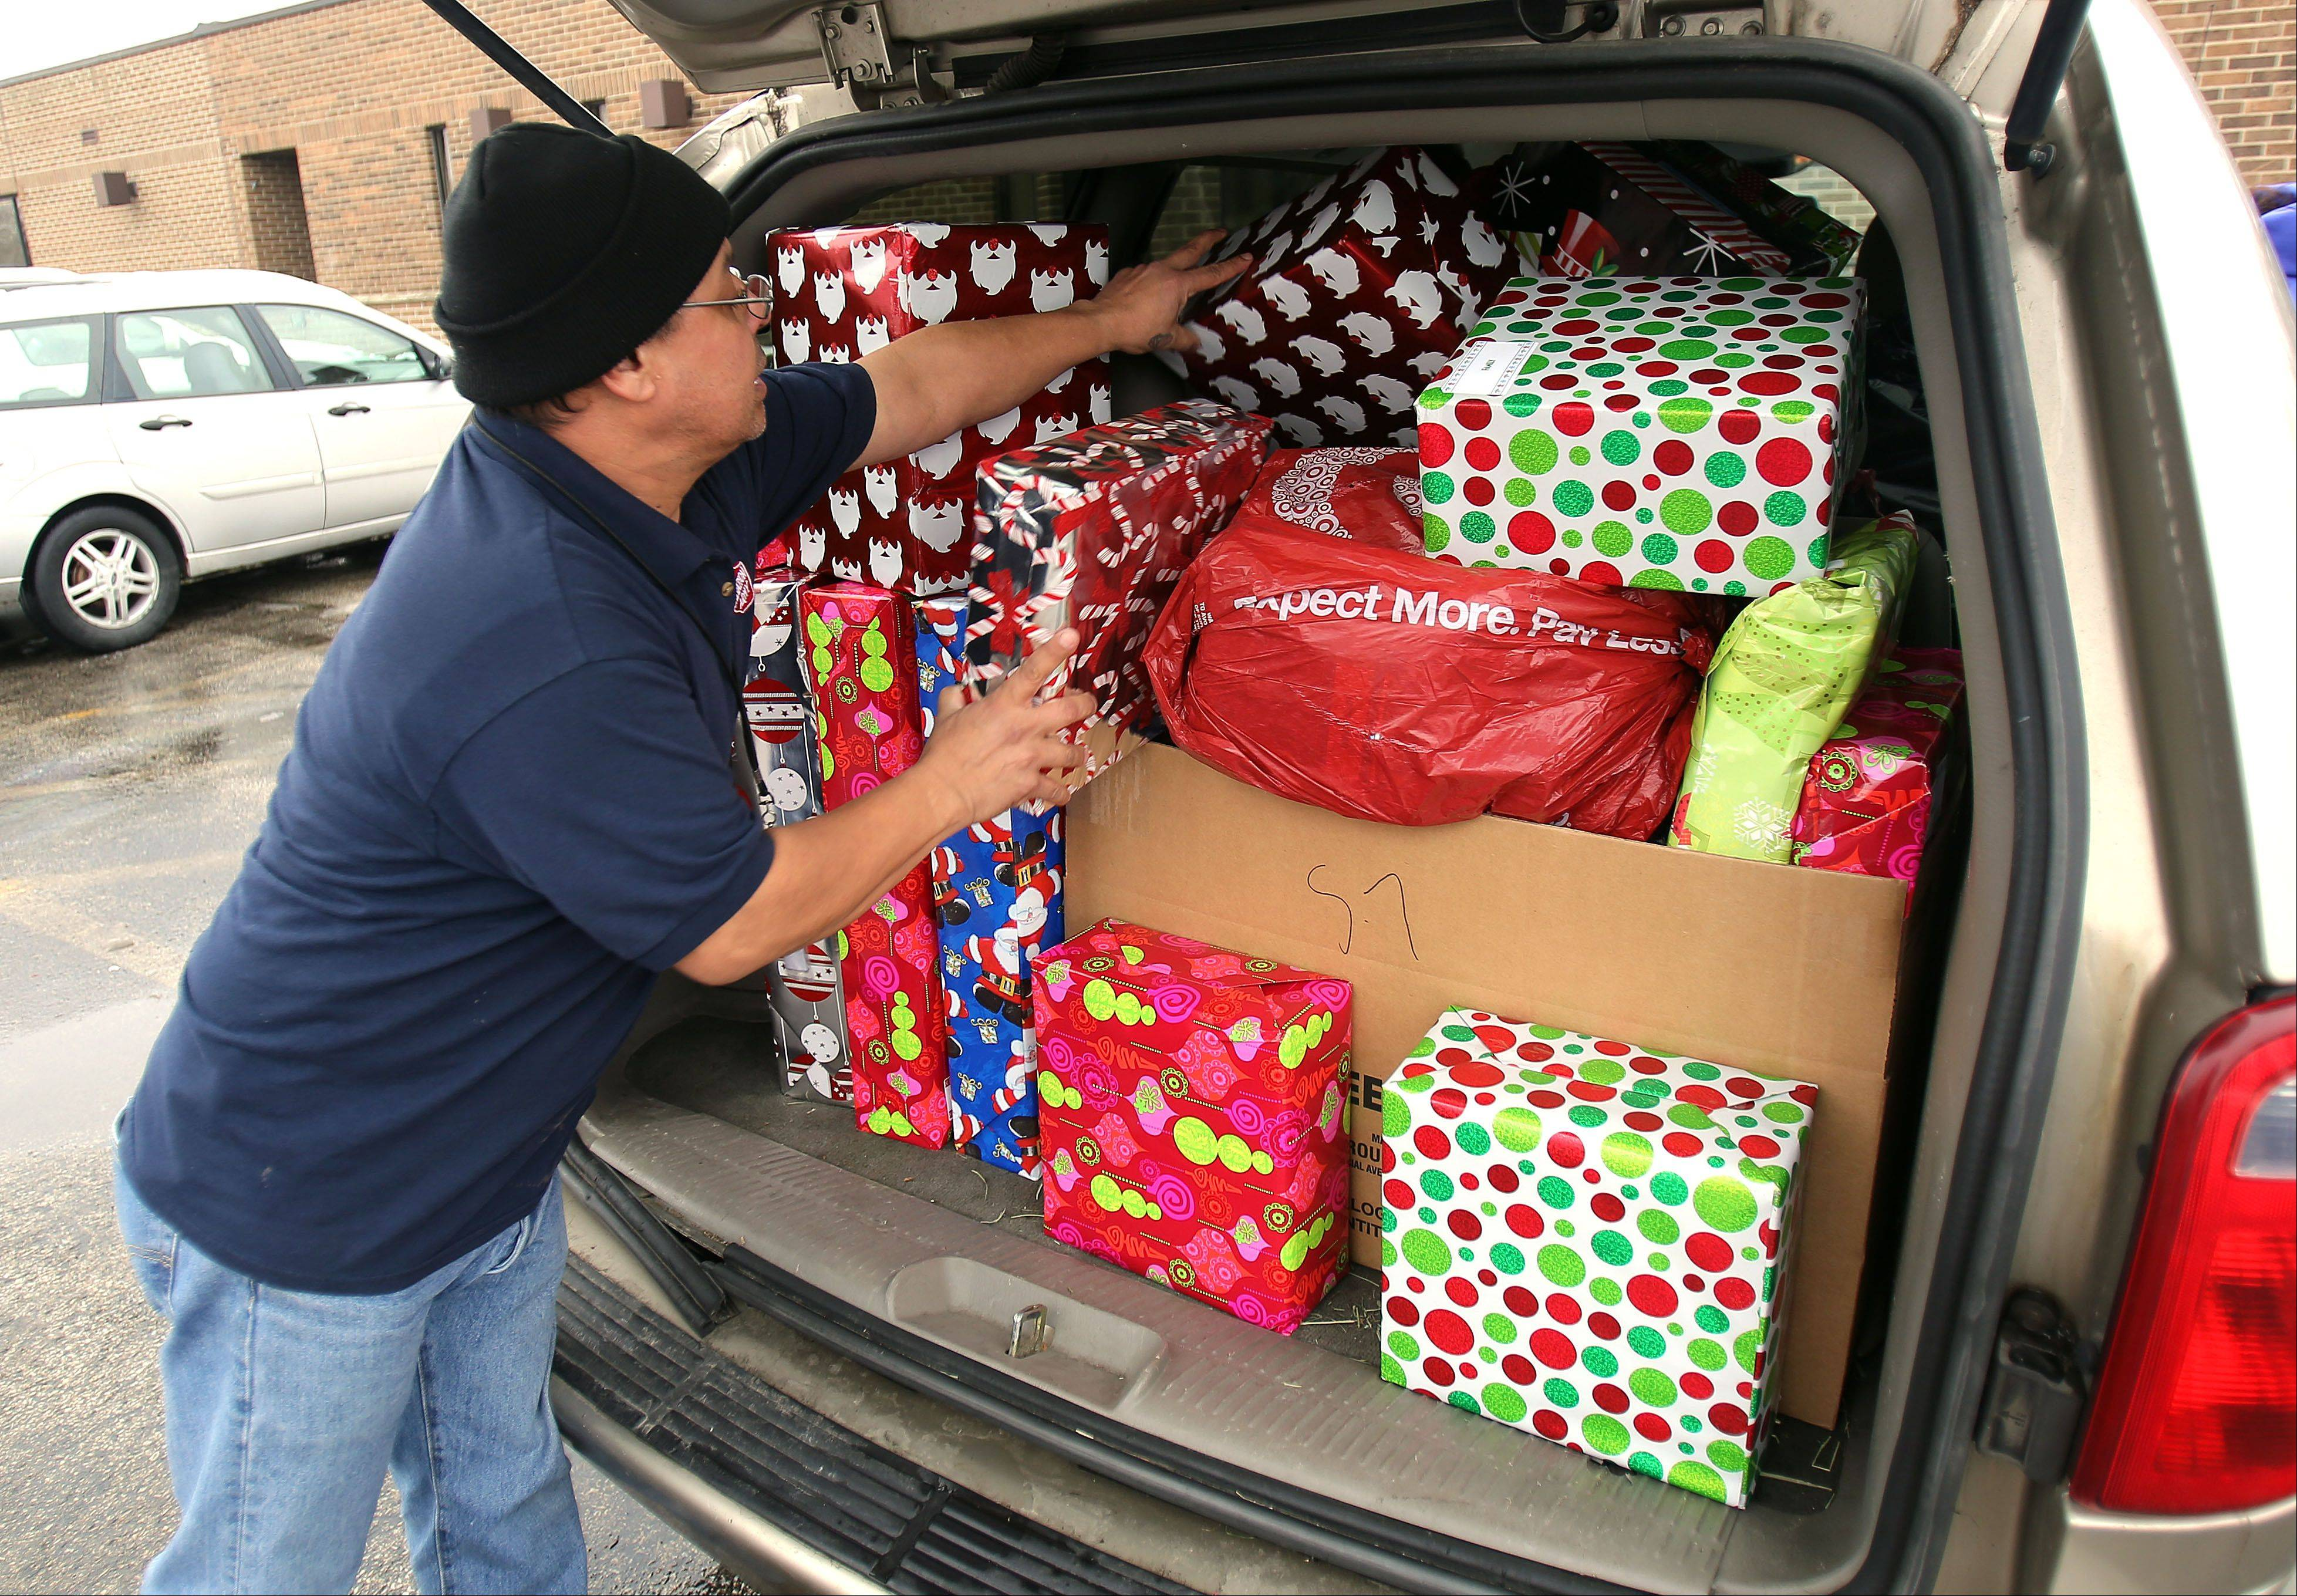 Salvation Army worker Stewart Porto loads a mini van with Christmas presents Thursday at the Salvation Army Waukegan Corps Community Center. The Angel Tree program provides gifts to more than 225 registered families, including 500 children.